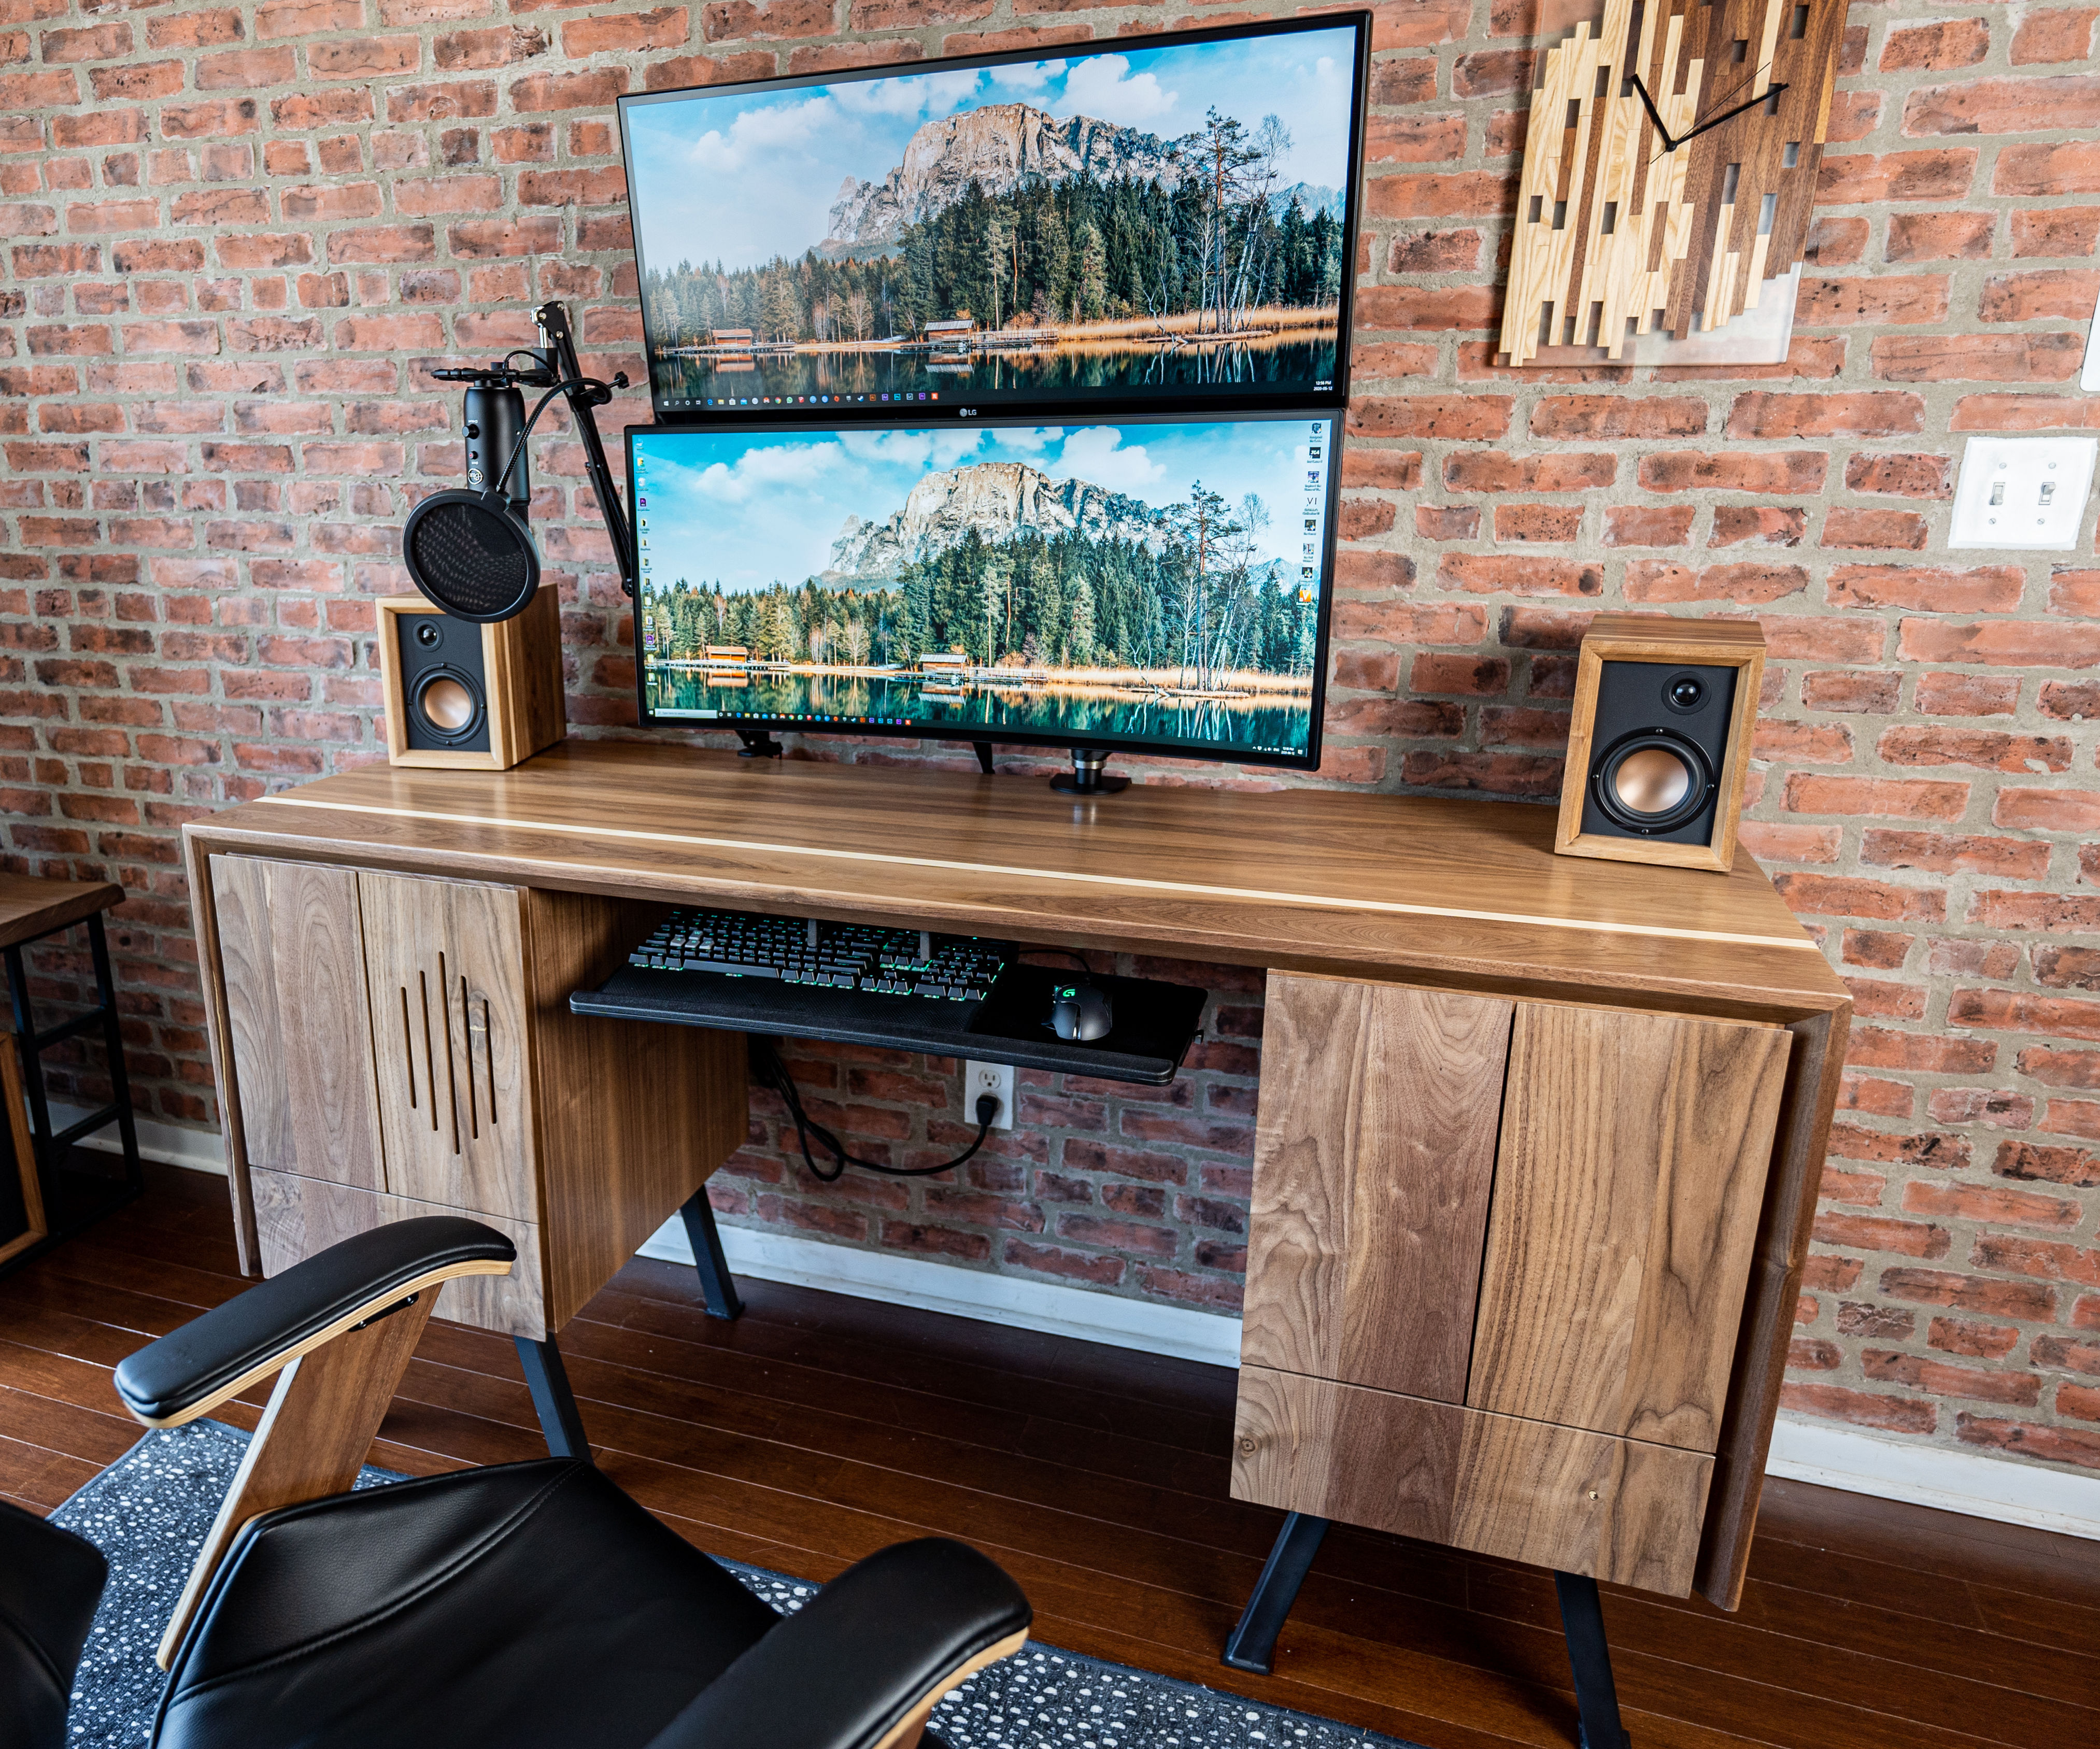 Building My Dream Desk With an Integrated Computer